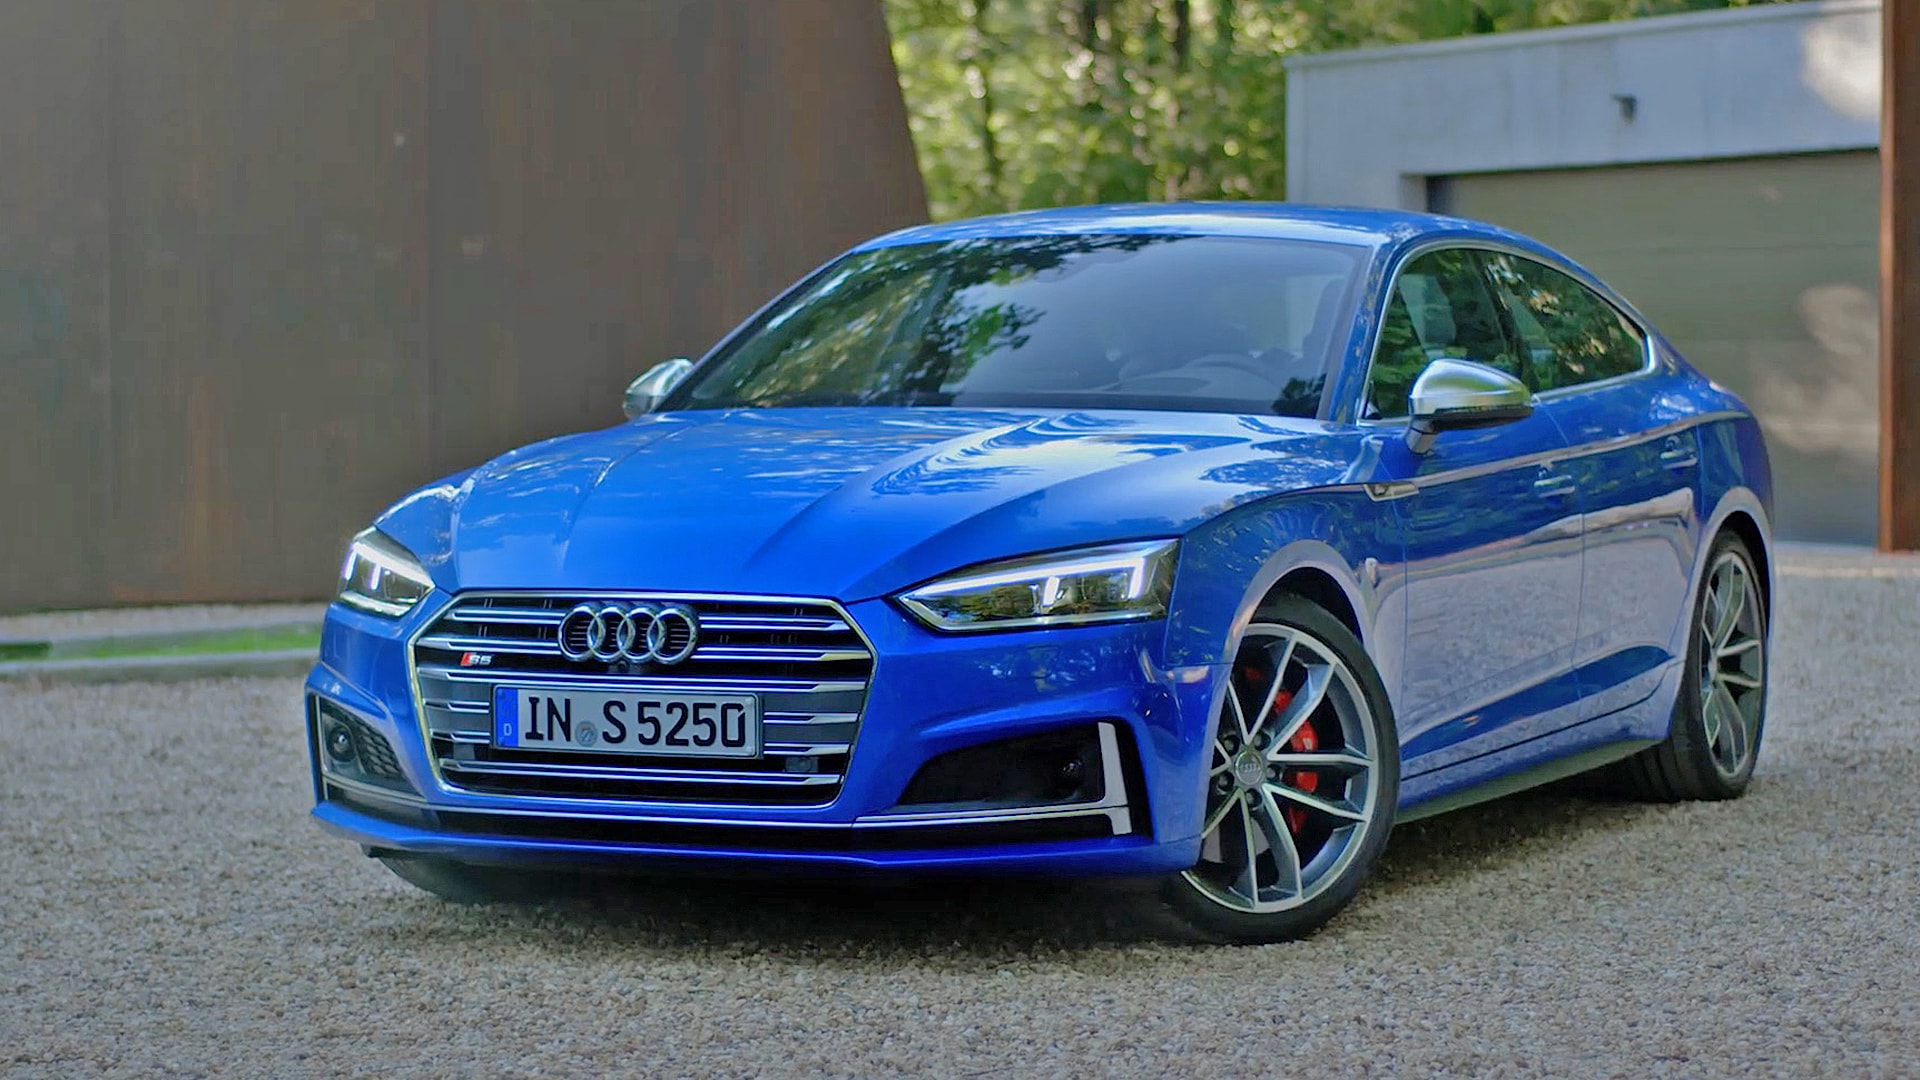 Audi A5 Sportback II Widescreen for desktop